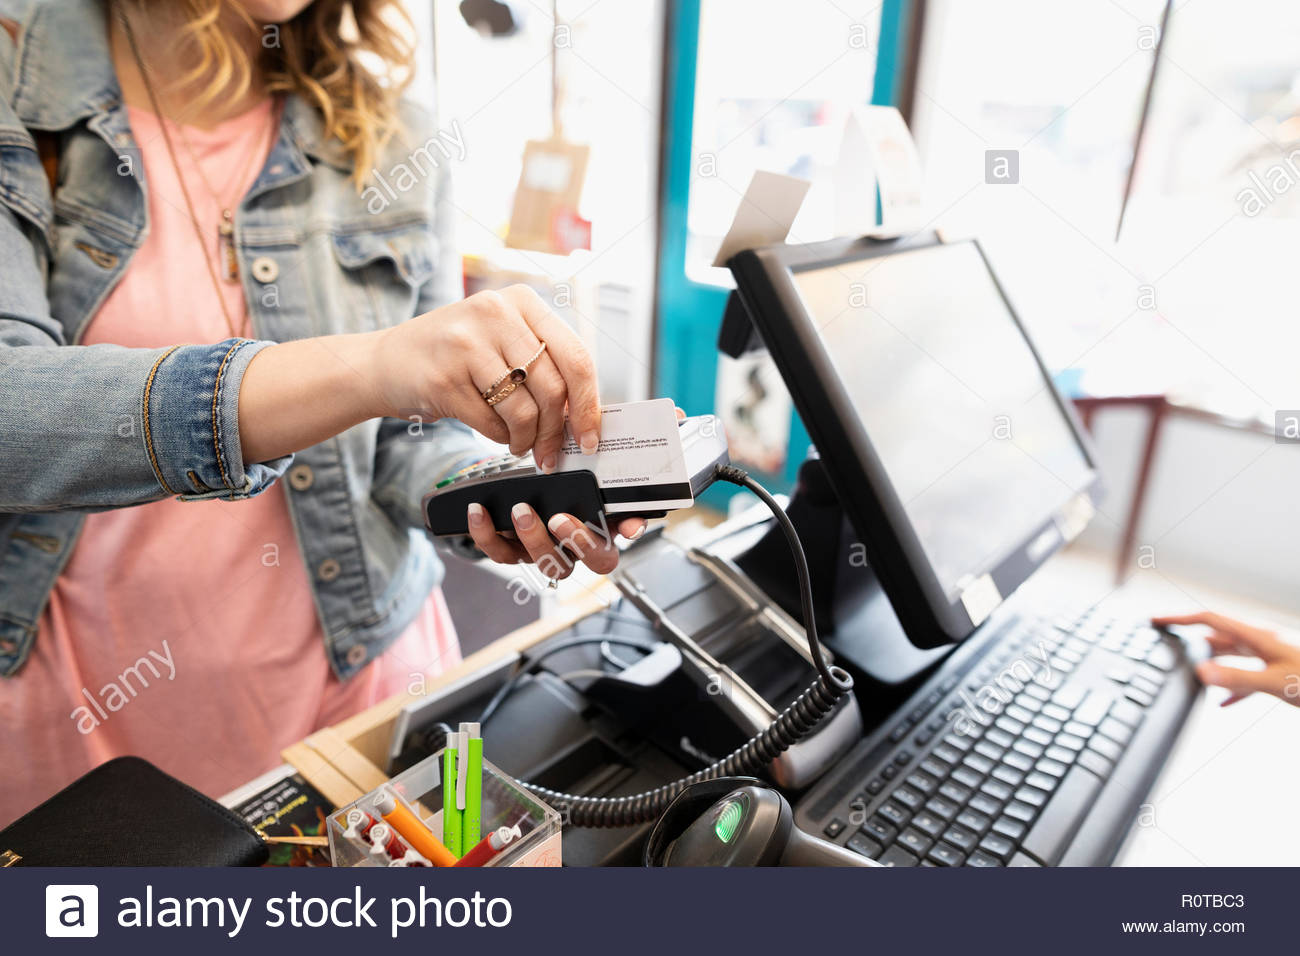 Female shopper paying with credit card, using credit card reader in shop - Stock Image